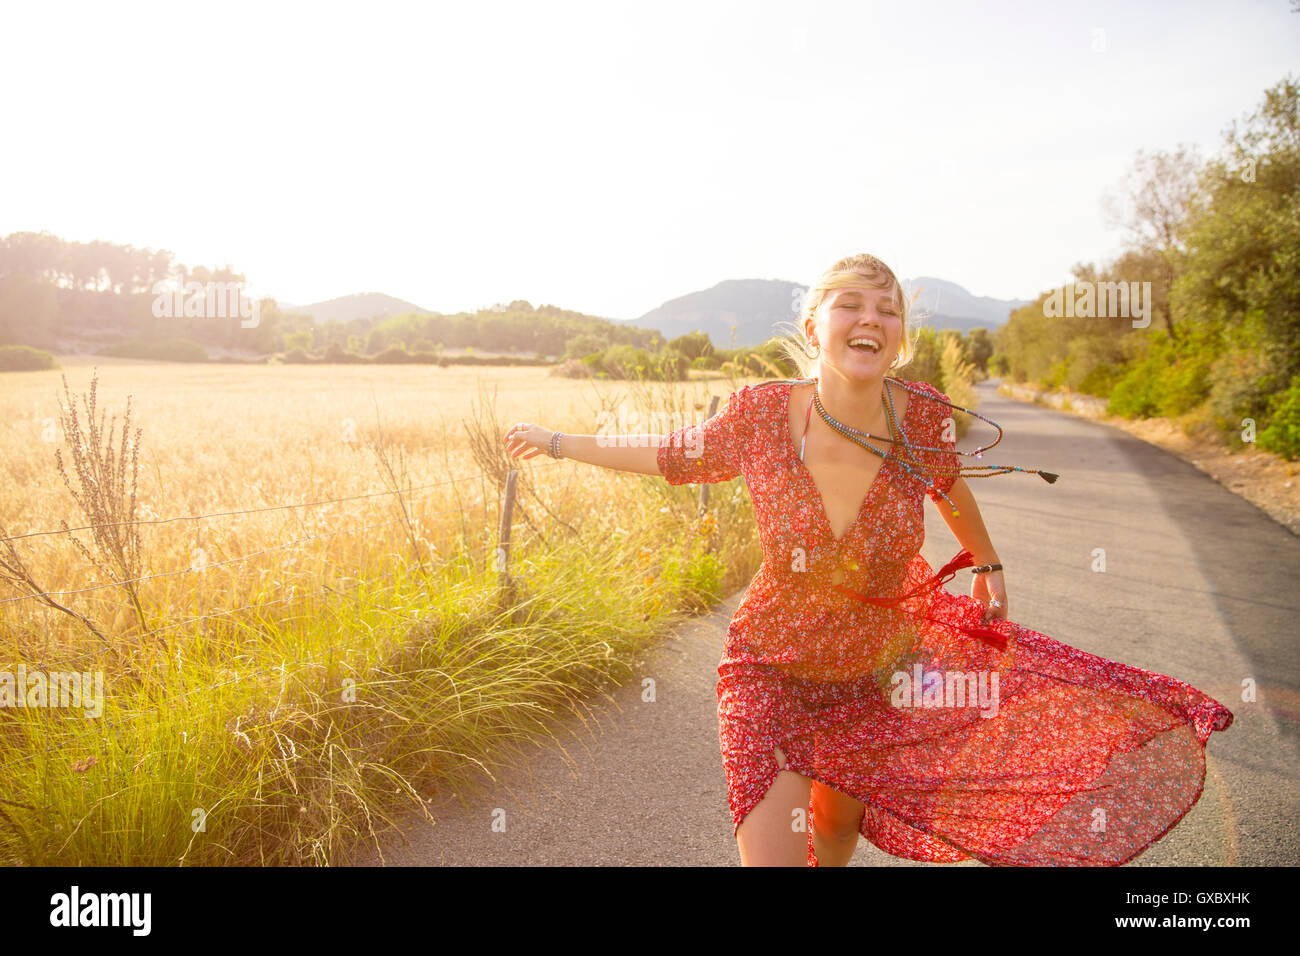 Young woman running and laughing on rural road, Majorca, Spain Stock Photo